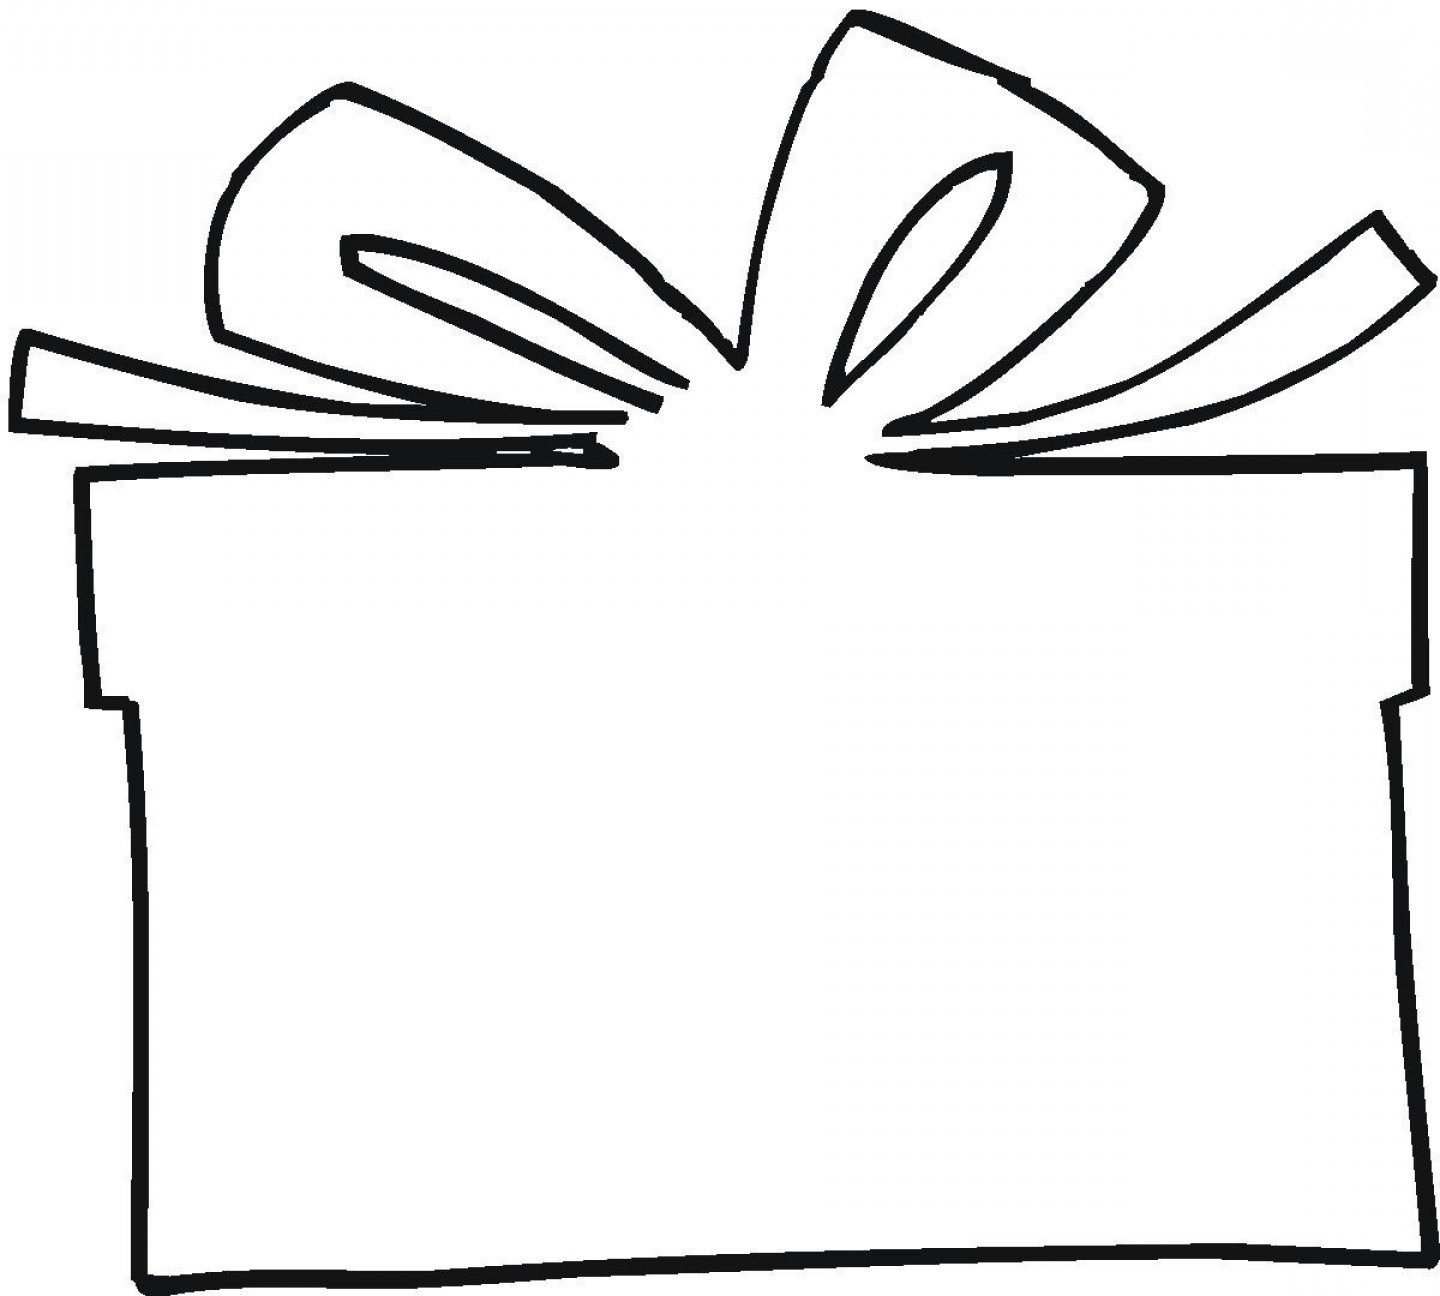 1440x1296 Free Clipart Drawing Box, Free Download Clipart